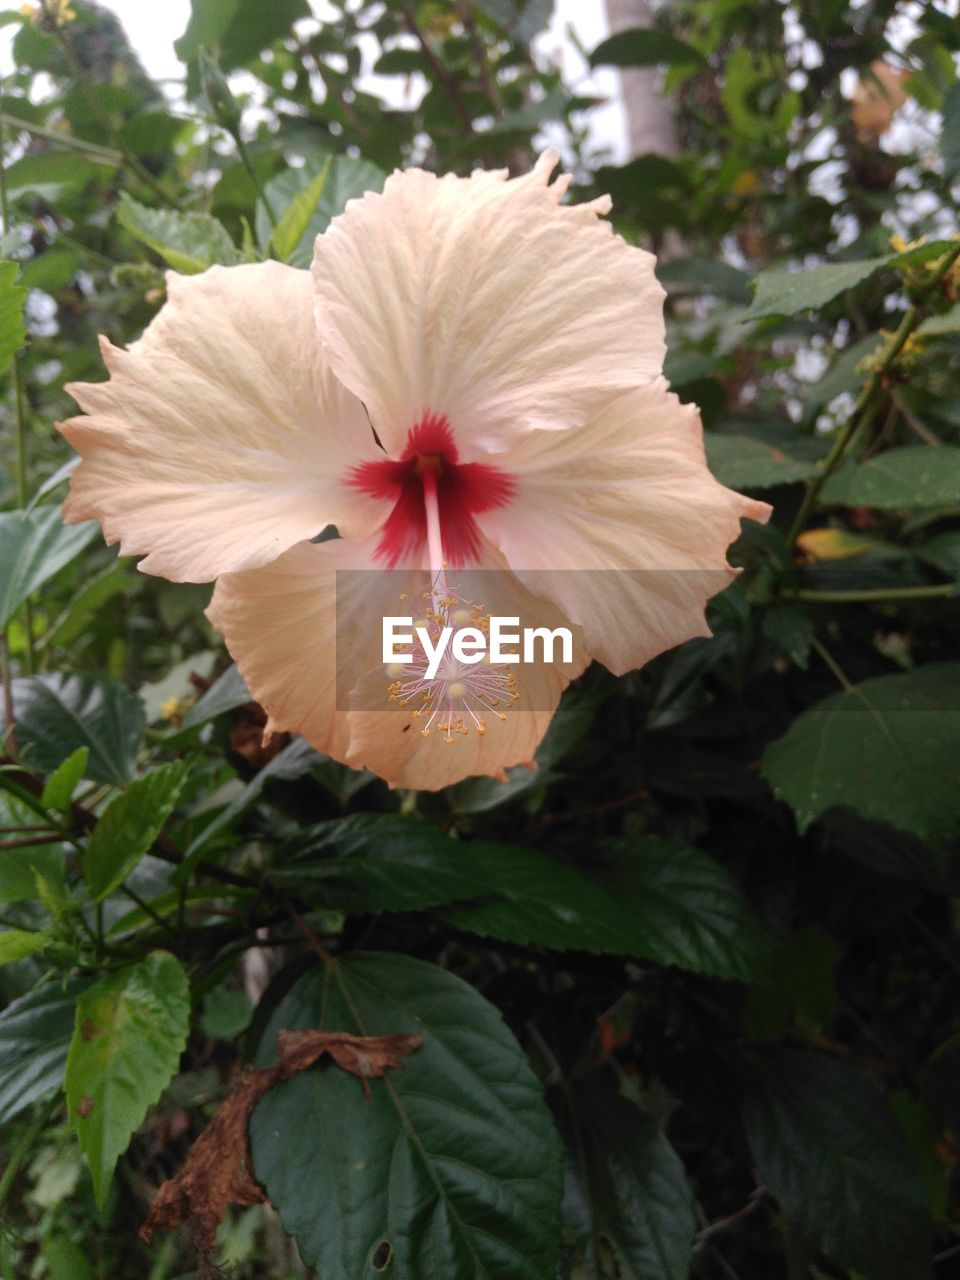 flower, growth, petal, flower head, nature, plant, fragility, beauty in nature, leaf, blooming, freshness, outdoors, day, green color, close-up, focus on foreground, no people, hibiscus